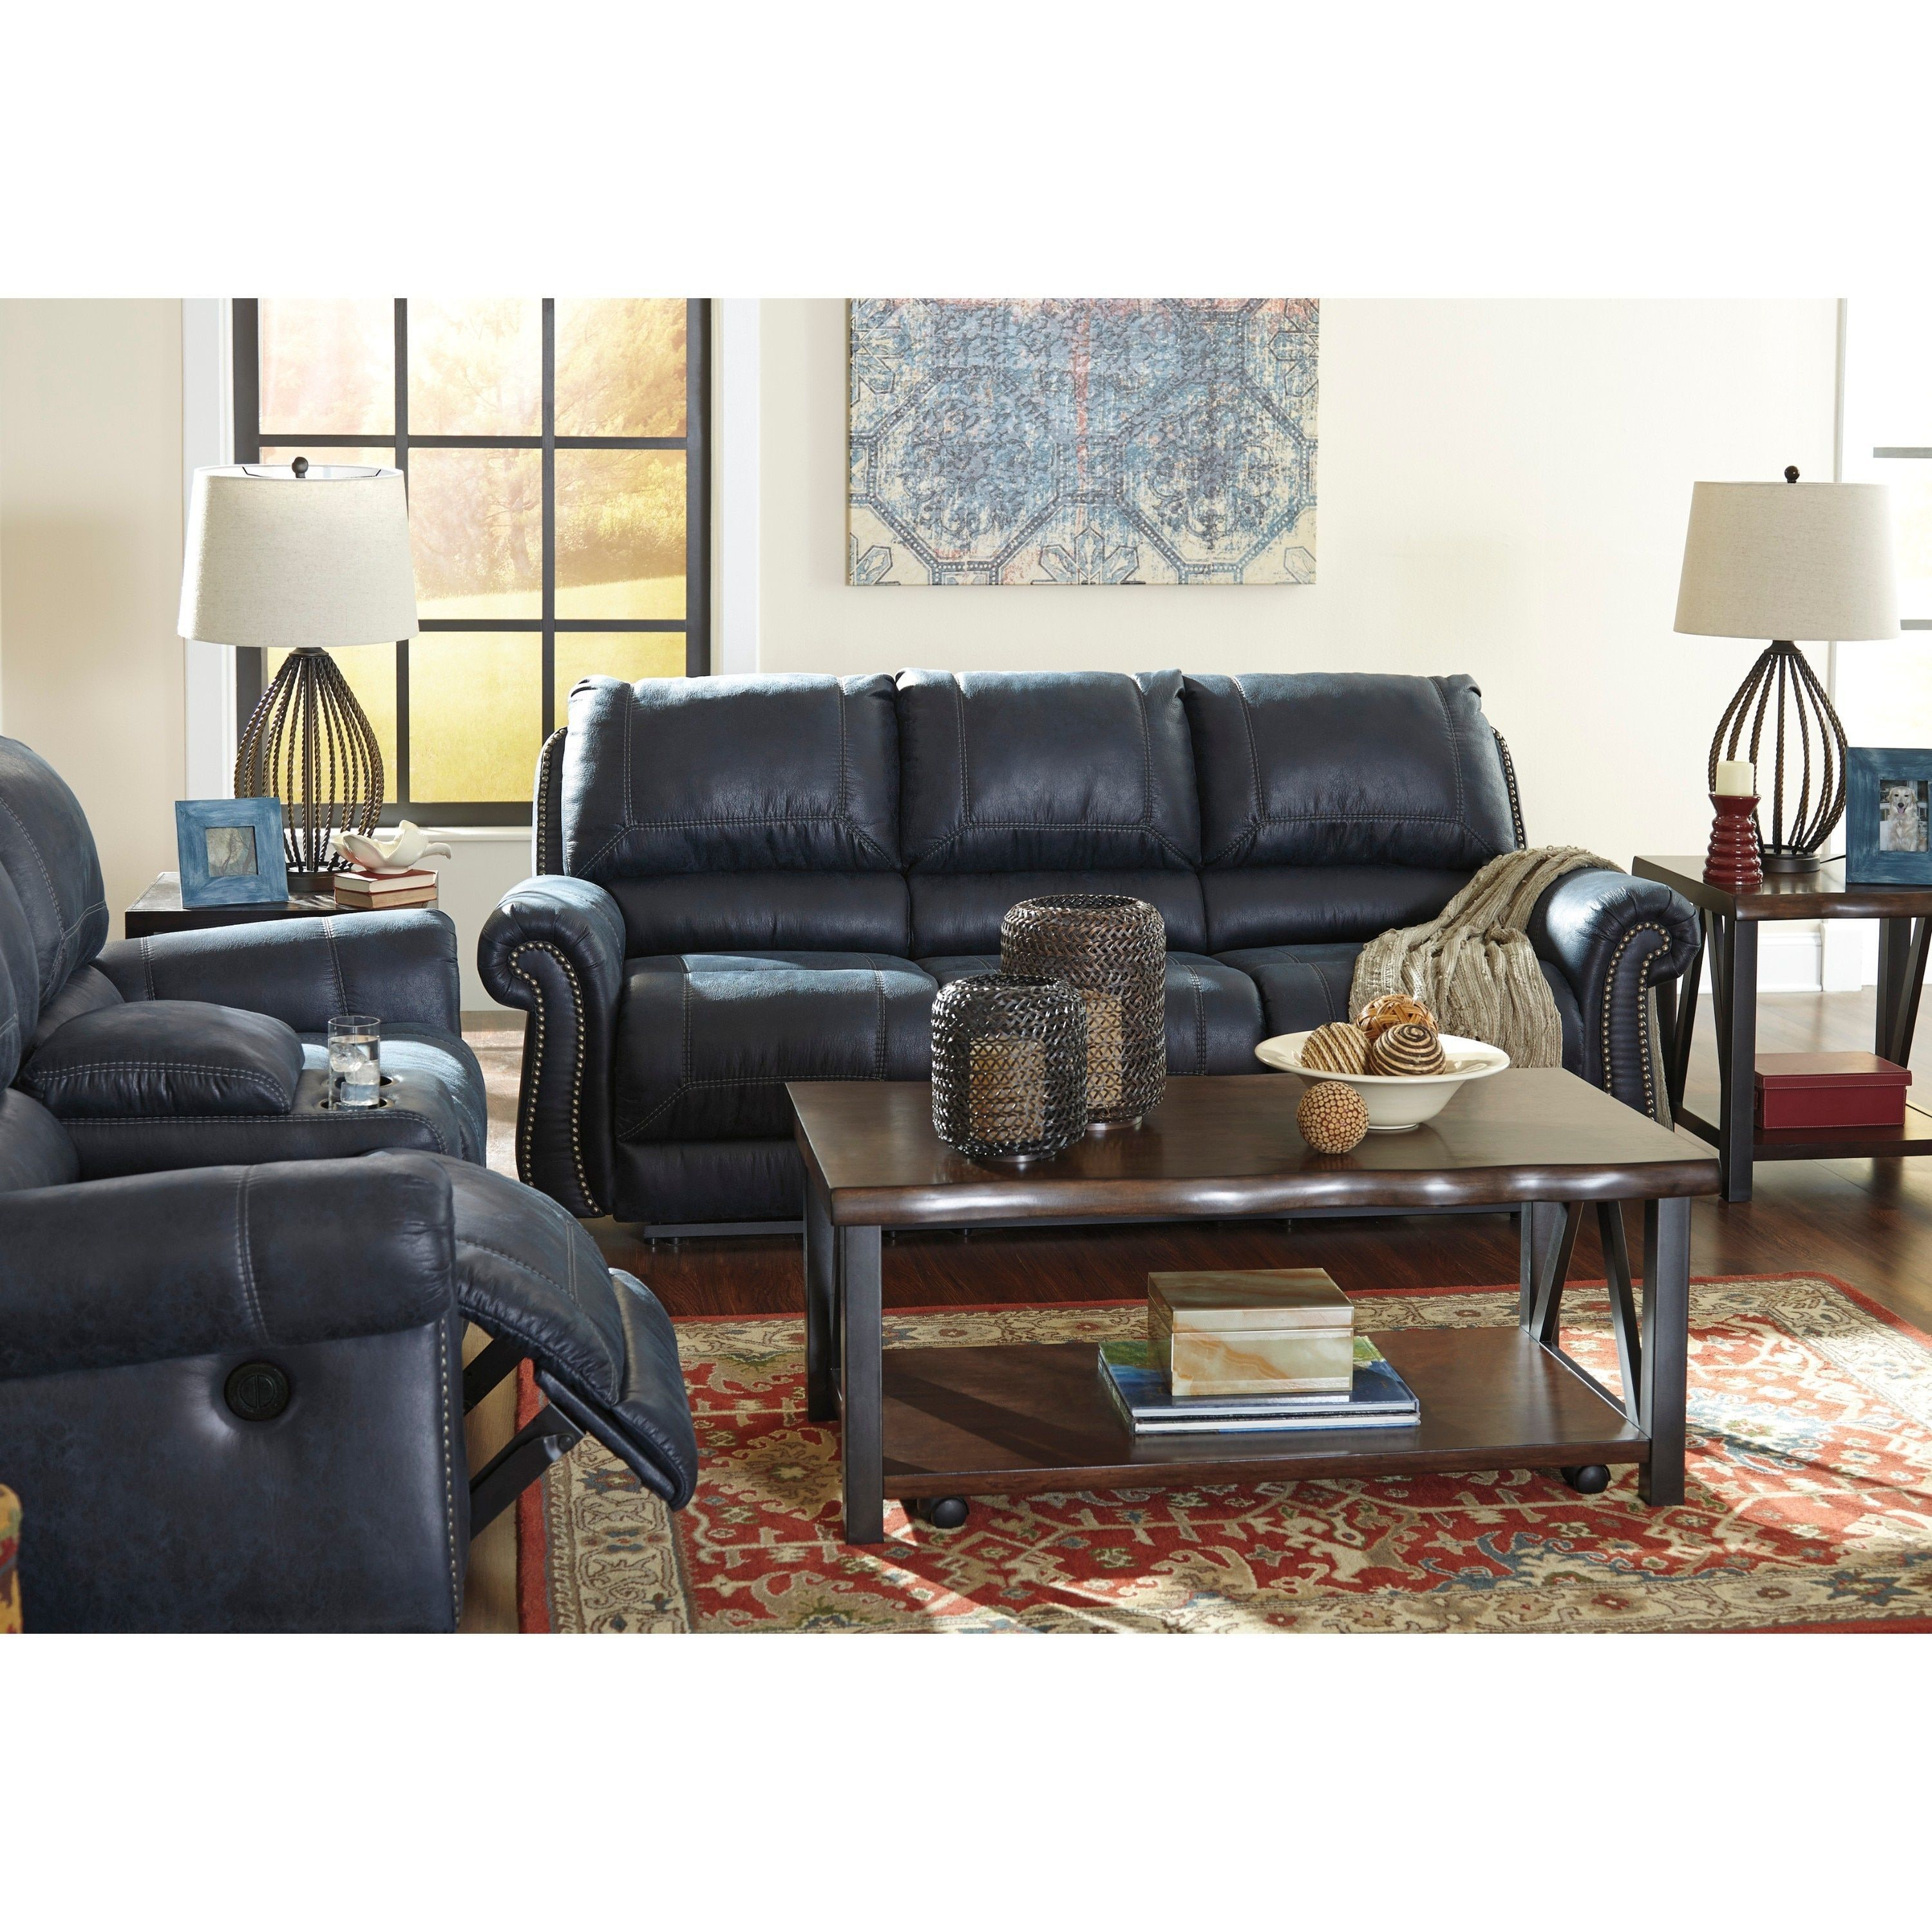 signature design by ashley milhaven navy reclining sofa reclining rh in pinterest com